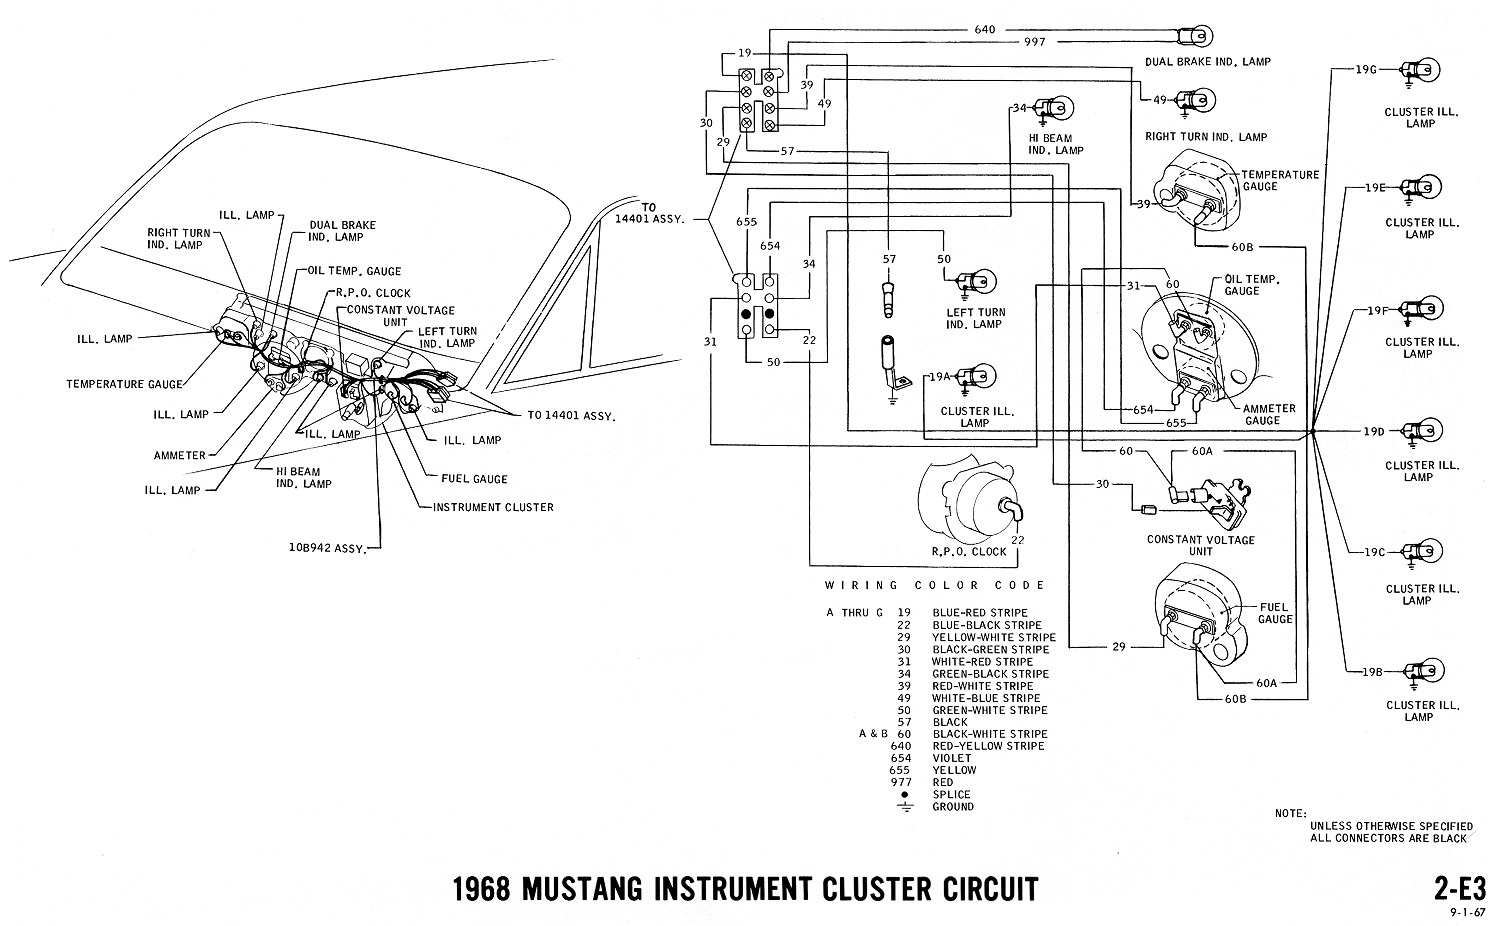 1968 mustang wiring diagram instruments 1968 mustang wiring diagrams and vacuum schematics average joe 1965 mustang wiring diagram at bayanpartner.co